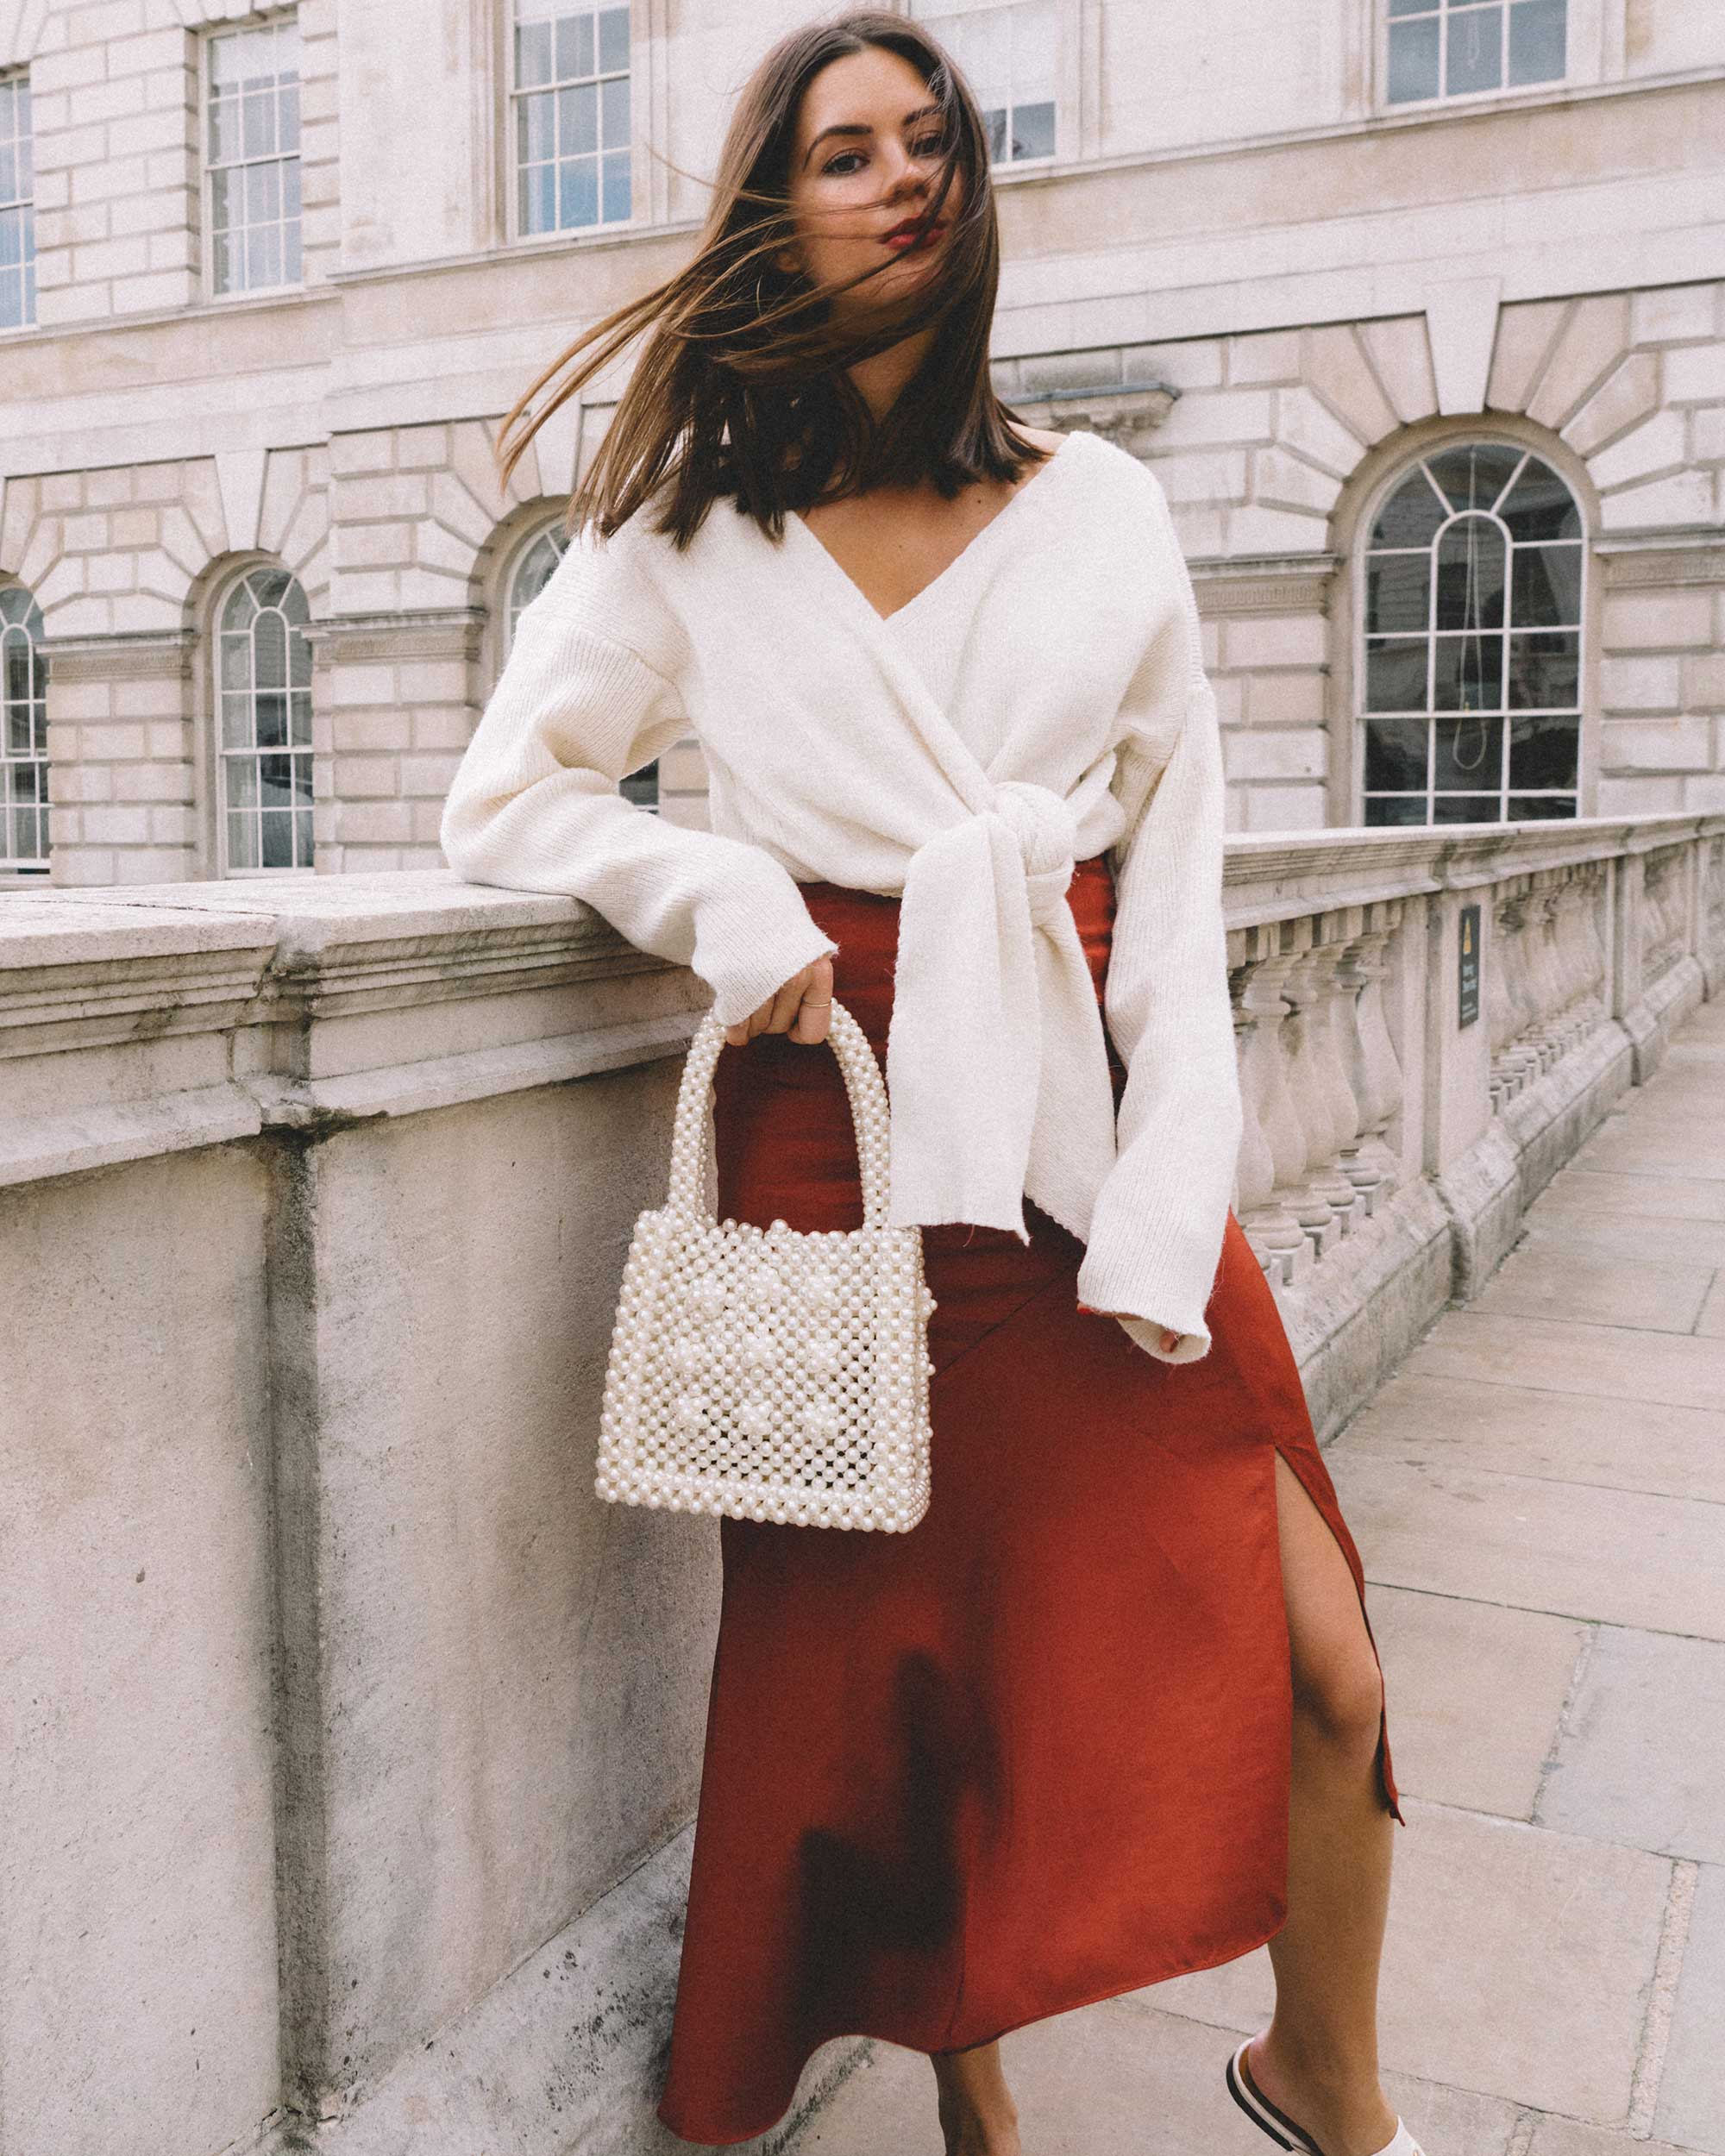 & Other Stories Asymmetric Slit Midi Skirt, Faux Pearl Handbag, Tied knot front Sweater london streetstyle outfit2.jpg